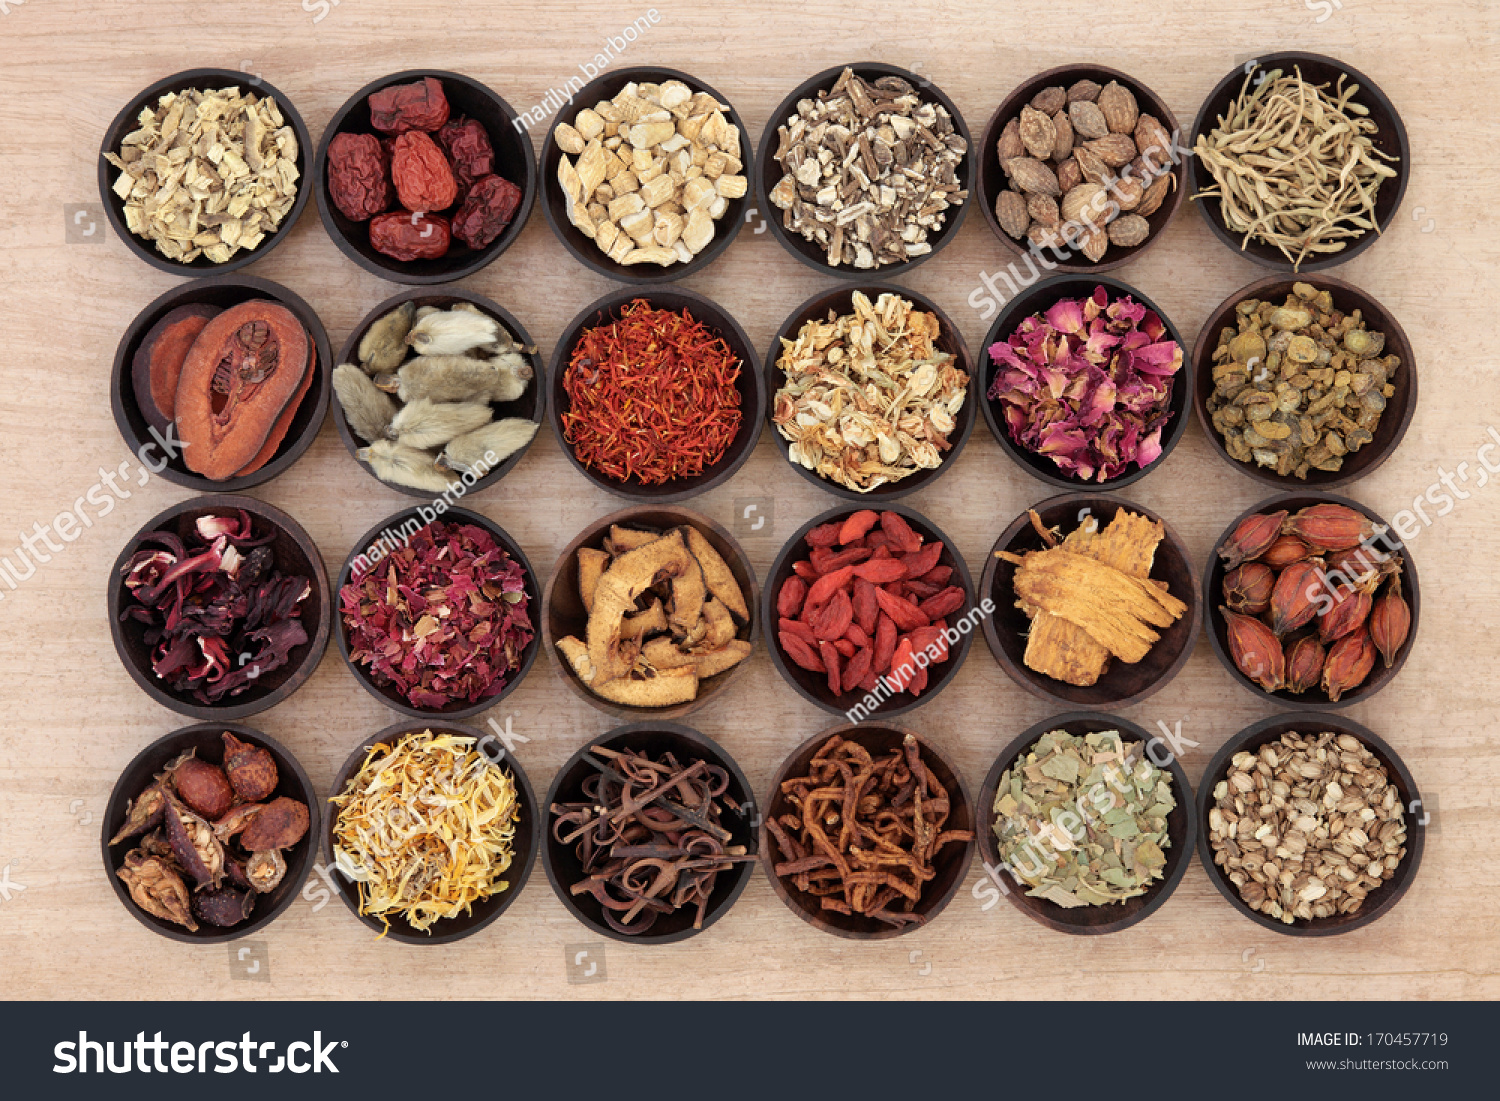 stock-photo-large-chinese-herbal-medicine-selection-in-wooden-bowls-over-papyrus-background-170457719